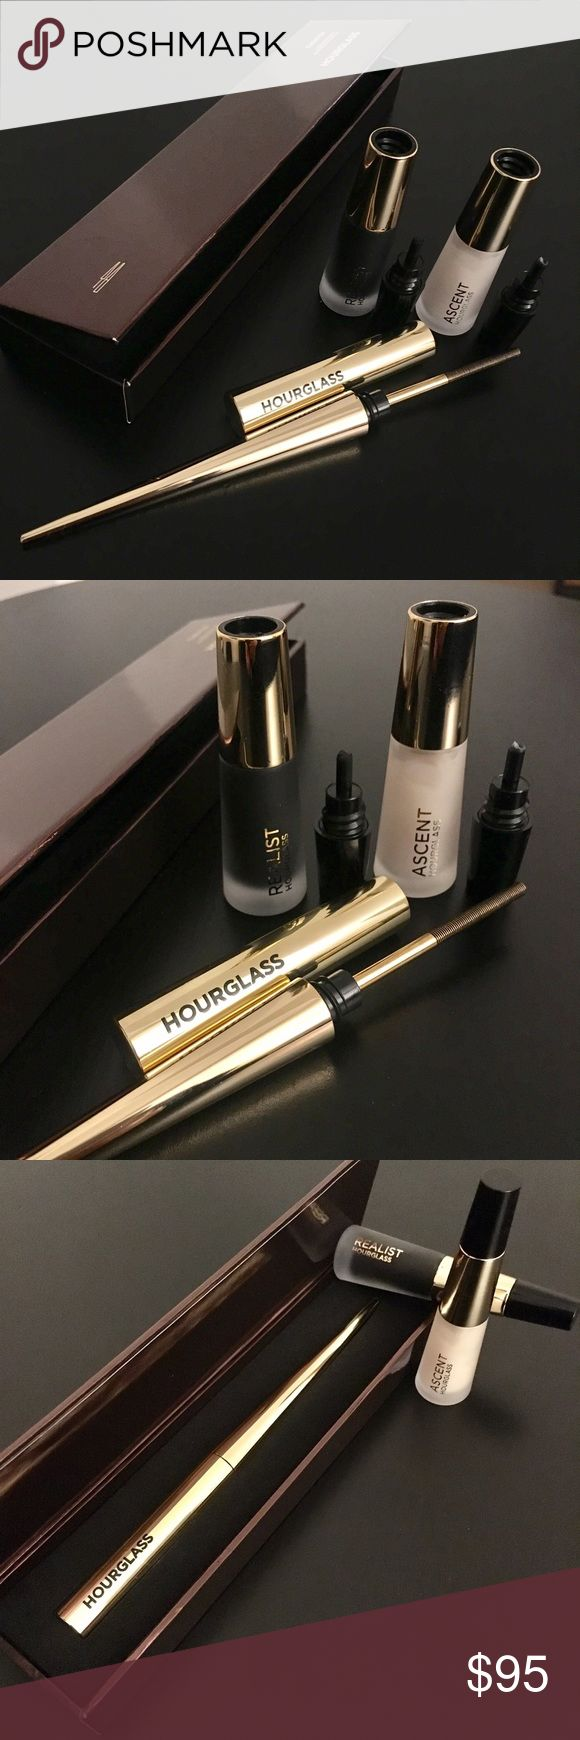 Hourglass Curator Lash Tool  + Primer and Mascara The Lash Artist - the Curator® Lash Instrument is designed to give you a full 360° range to evenly coat each and every lash from base to tip, creating beautifully defined lashes from any angle. This unique